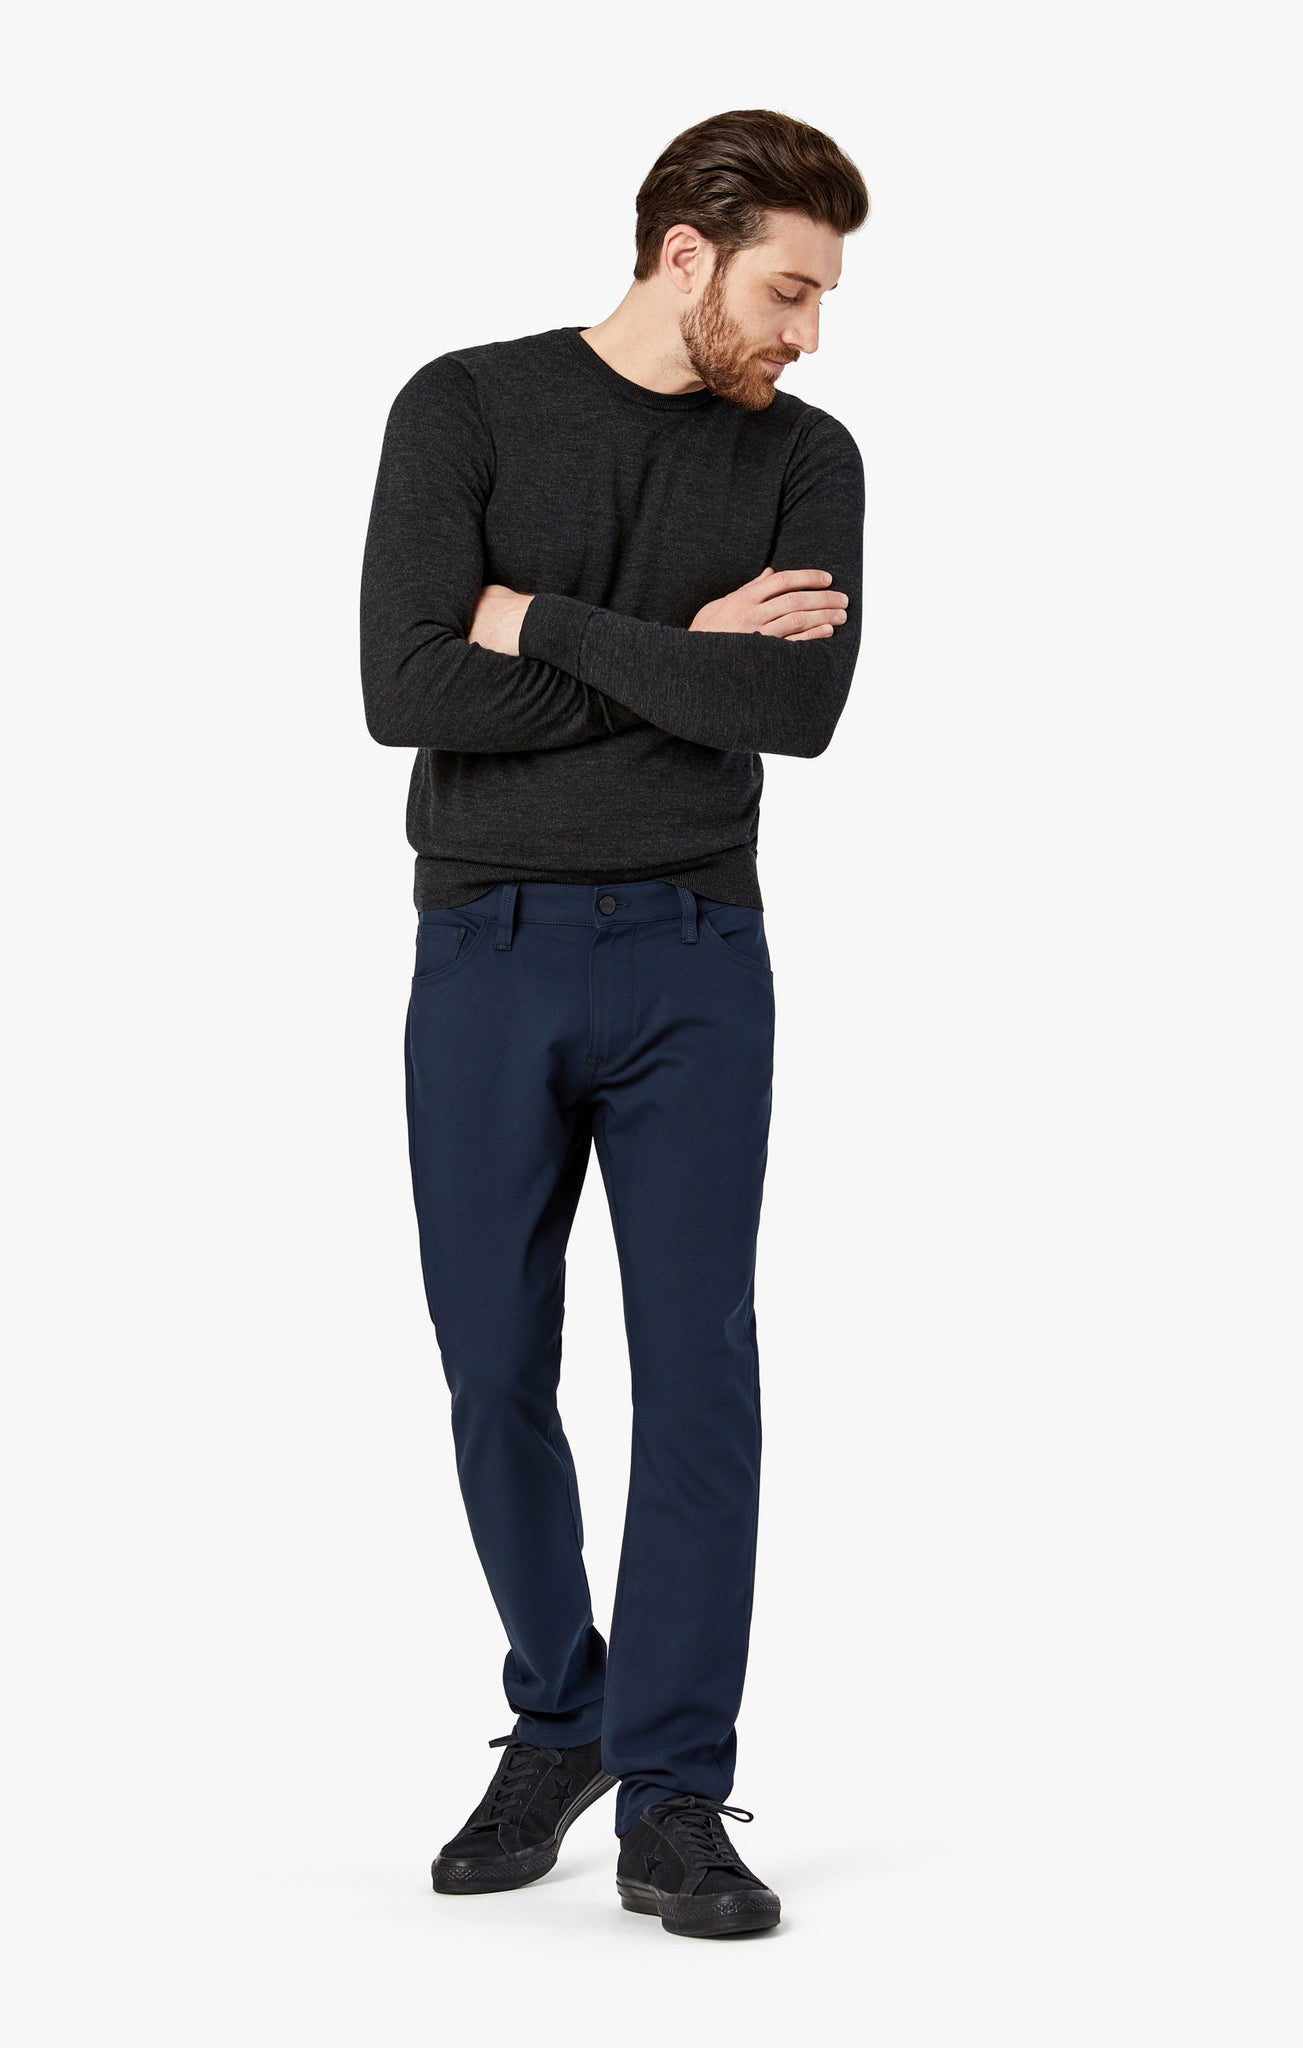 Courage Straight Leg Pants in Navy Commuter